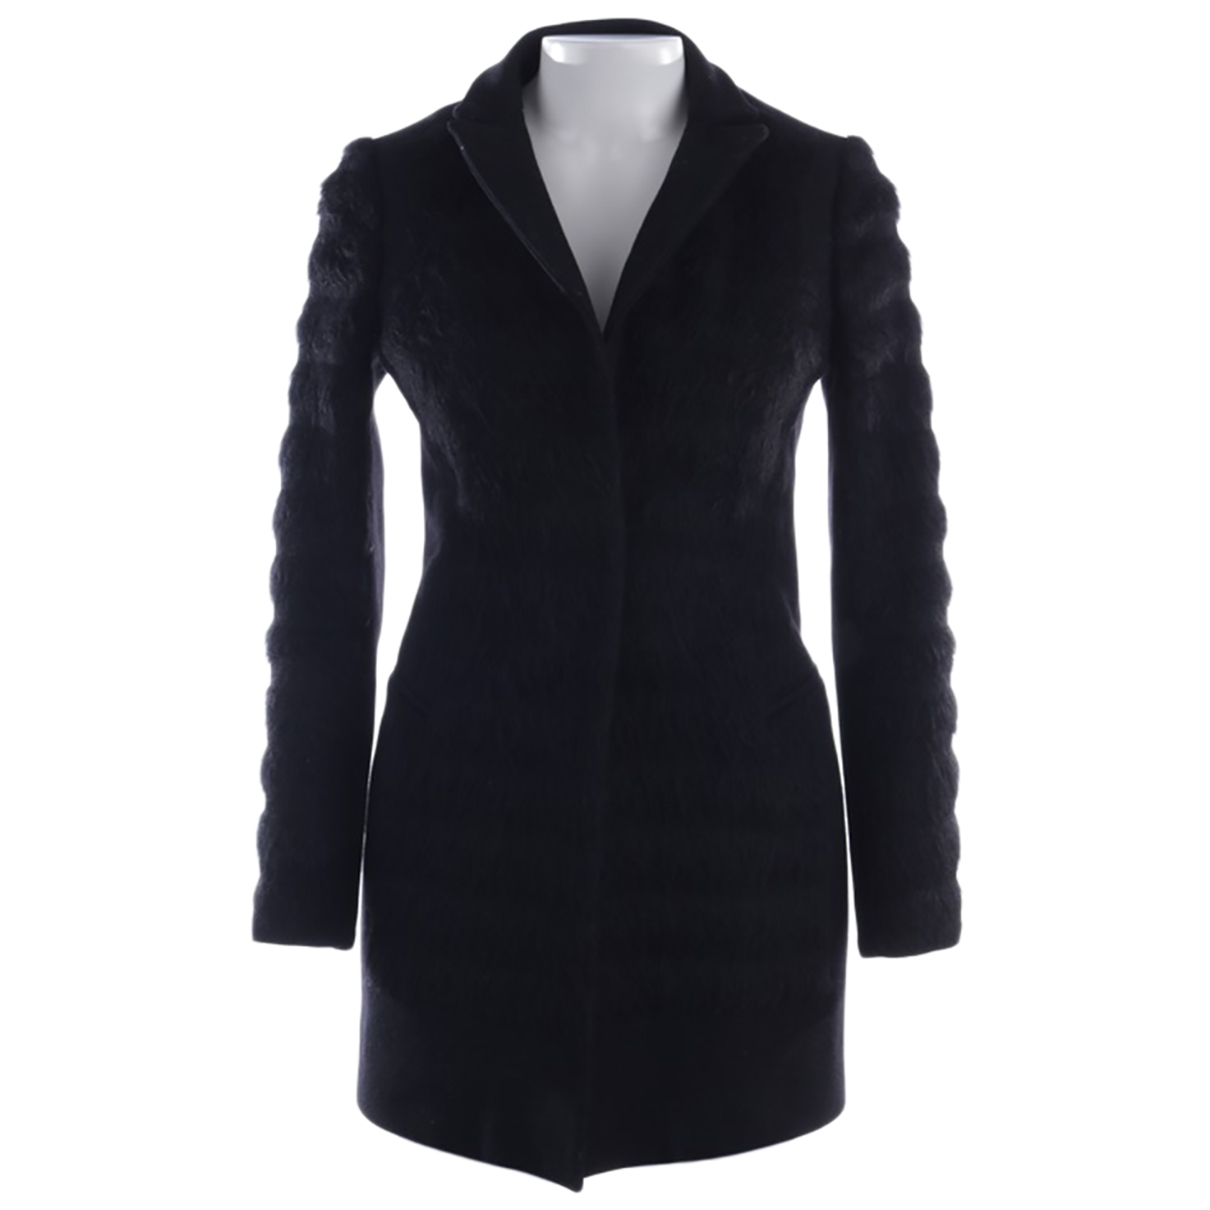 All Saints \N Black Wool jacket for Women 36 FR